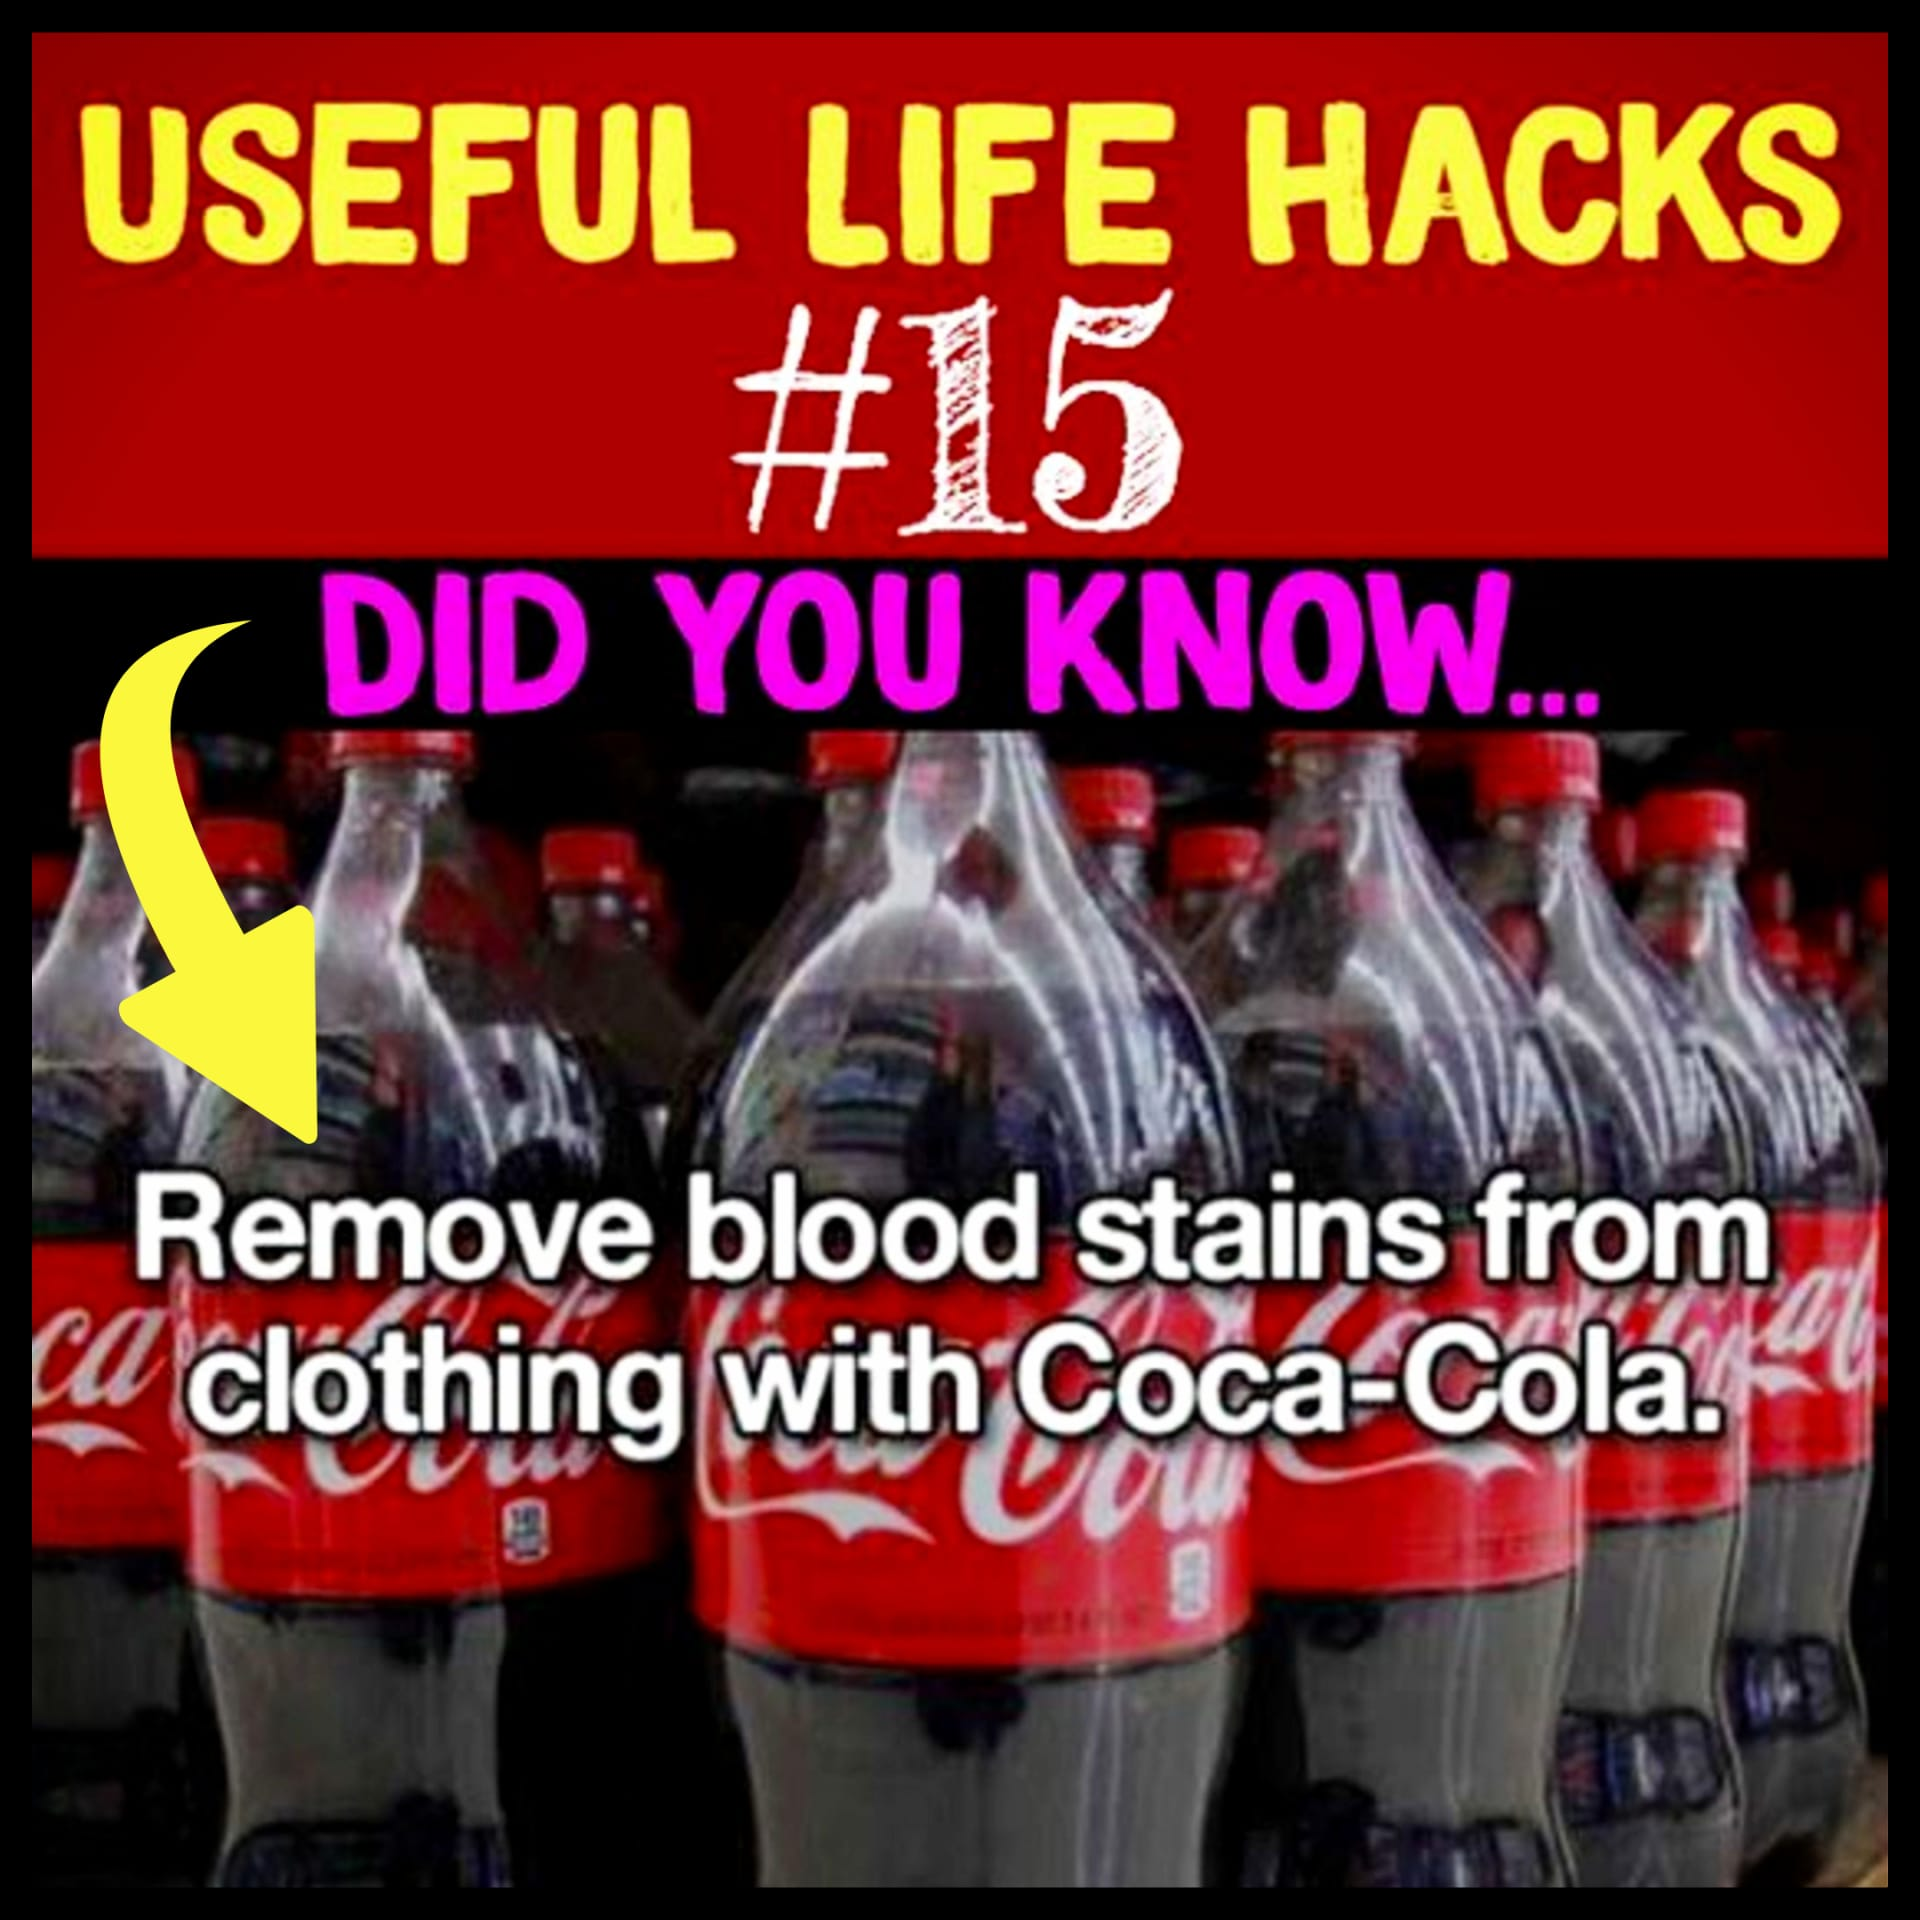 Blood stain removal from a mattress, sheets, clothes, carpet, couch or any wet or dried blood stain - remove blood stains from clothes tips - how to remove blood stains and more Useful Life Hacks - MIND BLOWN!  Households life hacks and good to know hacks tips and lifehacks - these household hacks, cleaning tips & tricks are such helpful hints and life changing lifehacks